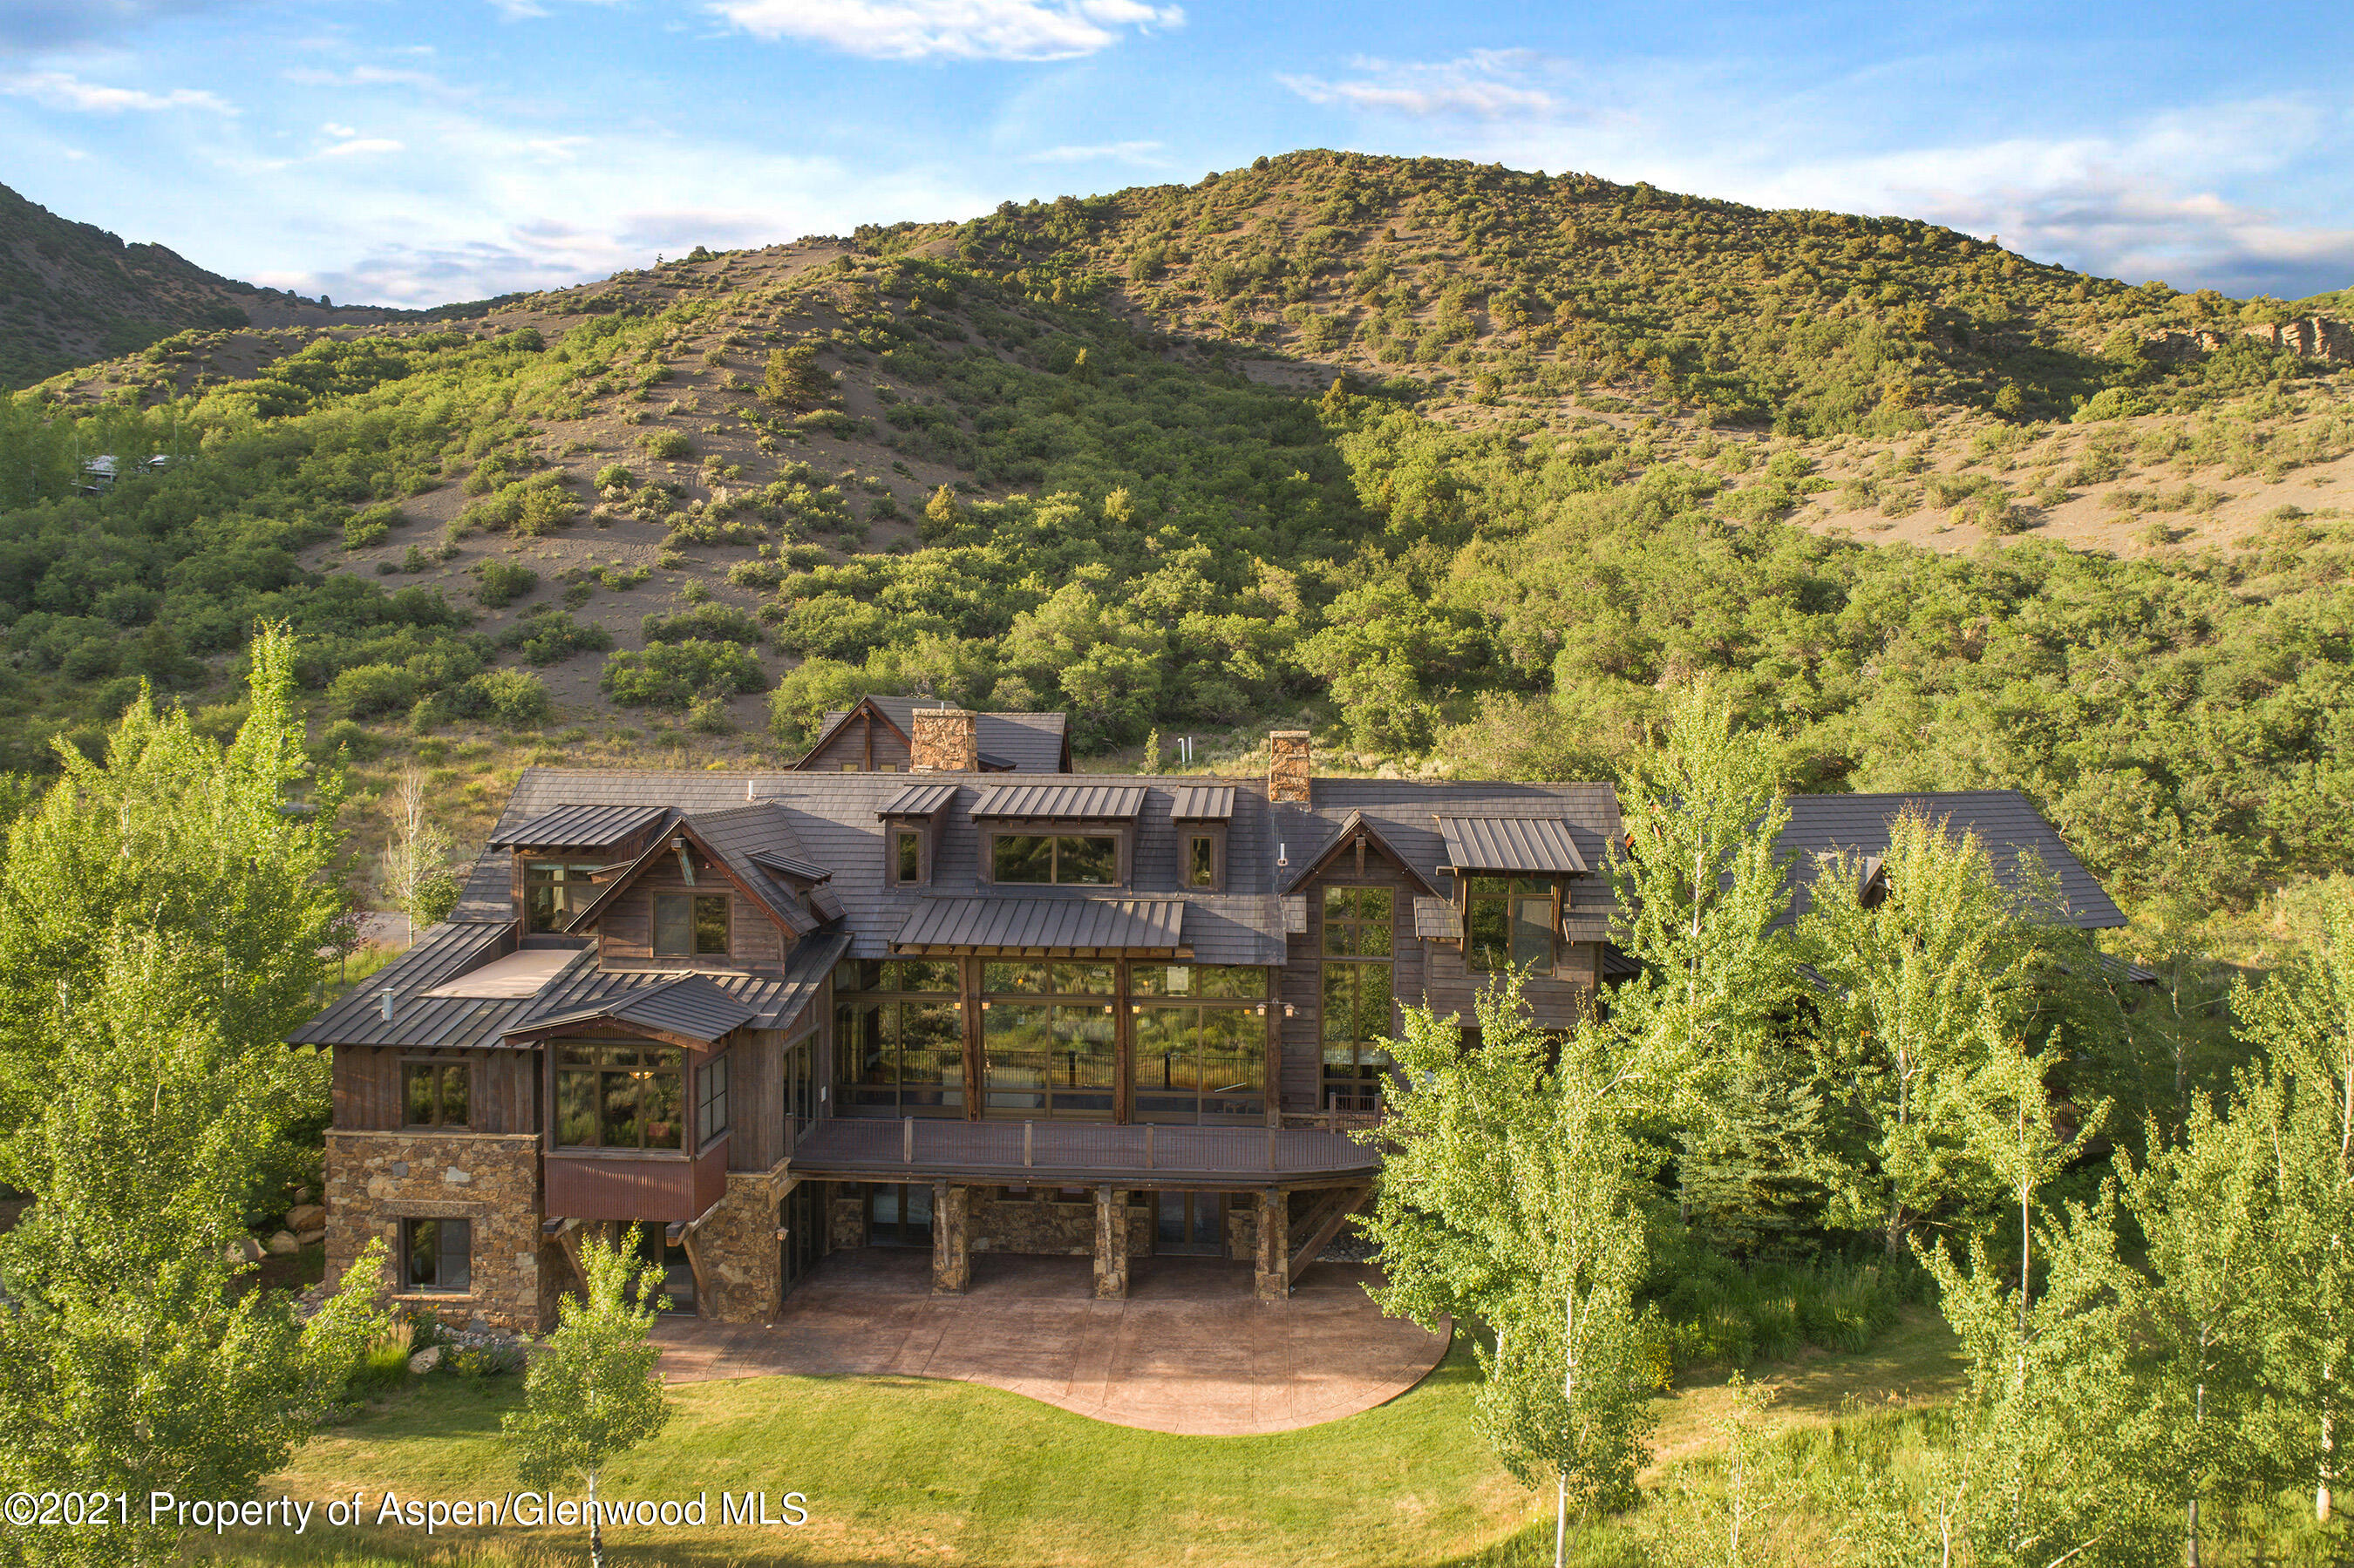 Never before offered: Hidden in the exclusive Pioneer Springs Ranch, with more than 13,000 square feet, this house is the ideal retreat. Offering both privacy and convenience, the 10-bedroom residence features an 8-bedroom main house with two well-equipped offices, an attached 2-bedroom apartment, and spectacular mountain views. Gourmet kitchen, butler's pantry with warming drawers, wine room, elevator, snowmelt, emergency generator, hundreds of square feet of storage, and even a spot to build a horse barn. The architecture is reminiscent of historic mining cabins, and the house was built with extensive stonework and reclaimed barnwood inside and out. Situated on 39 acres, only 10-12 minutes to downtown Aspen, less than 10 minutes to Aspen airport and Snowmass Village. Offered for $15,742.